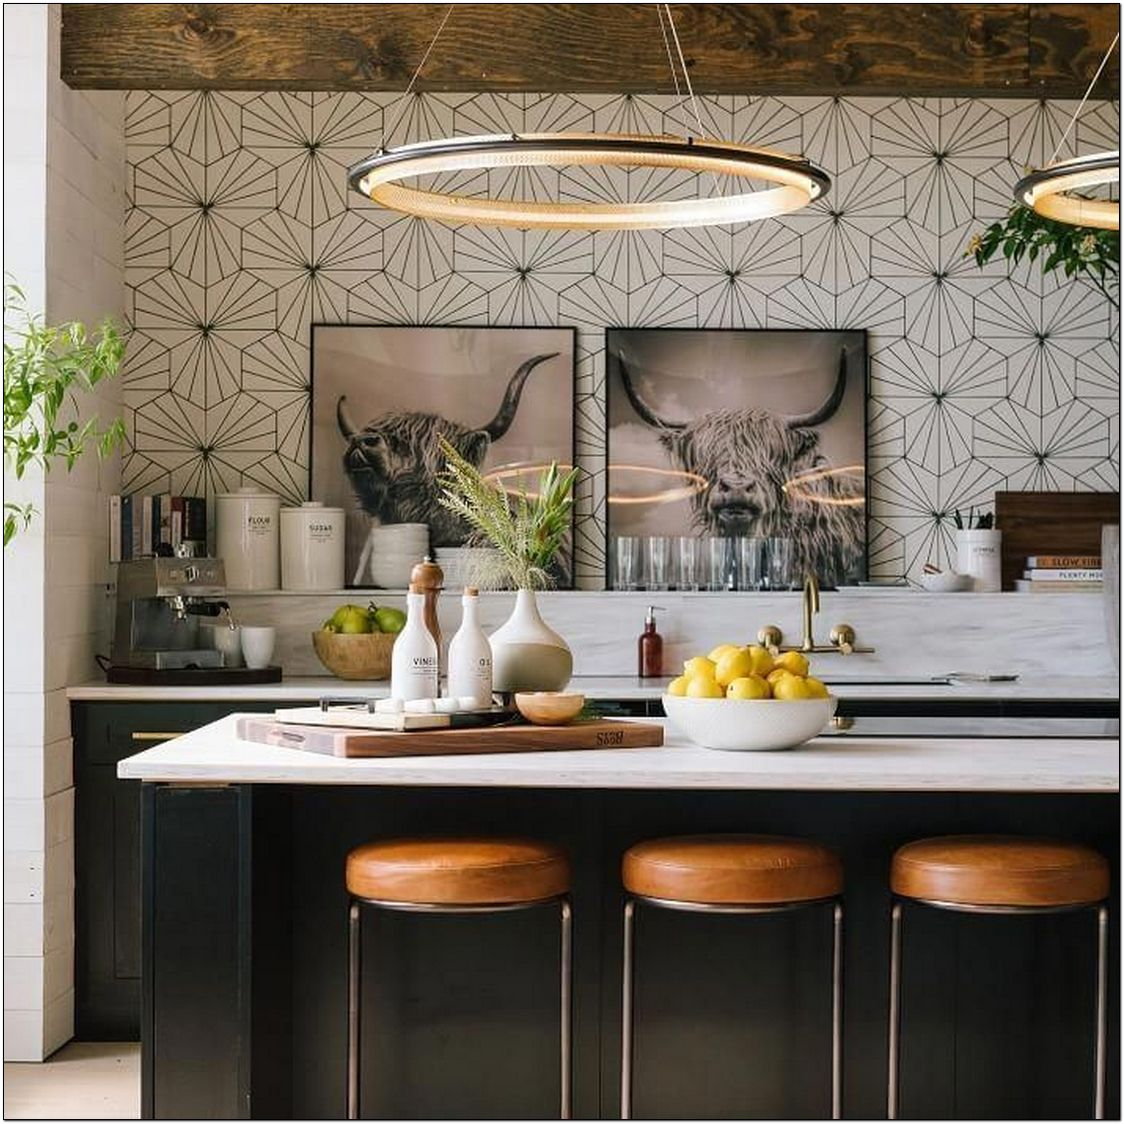 6 IDEAS FOR CHOOSING YOUR KITCHEN CREDENZA